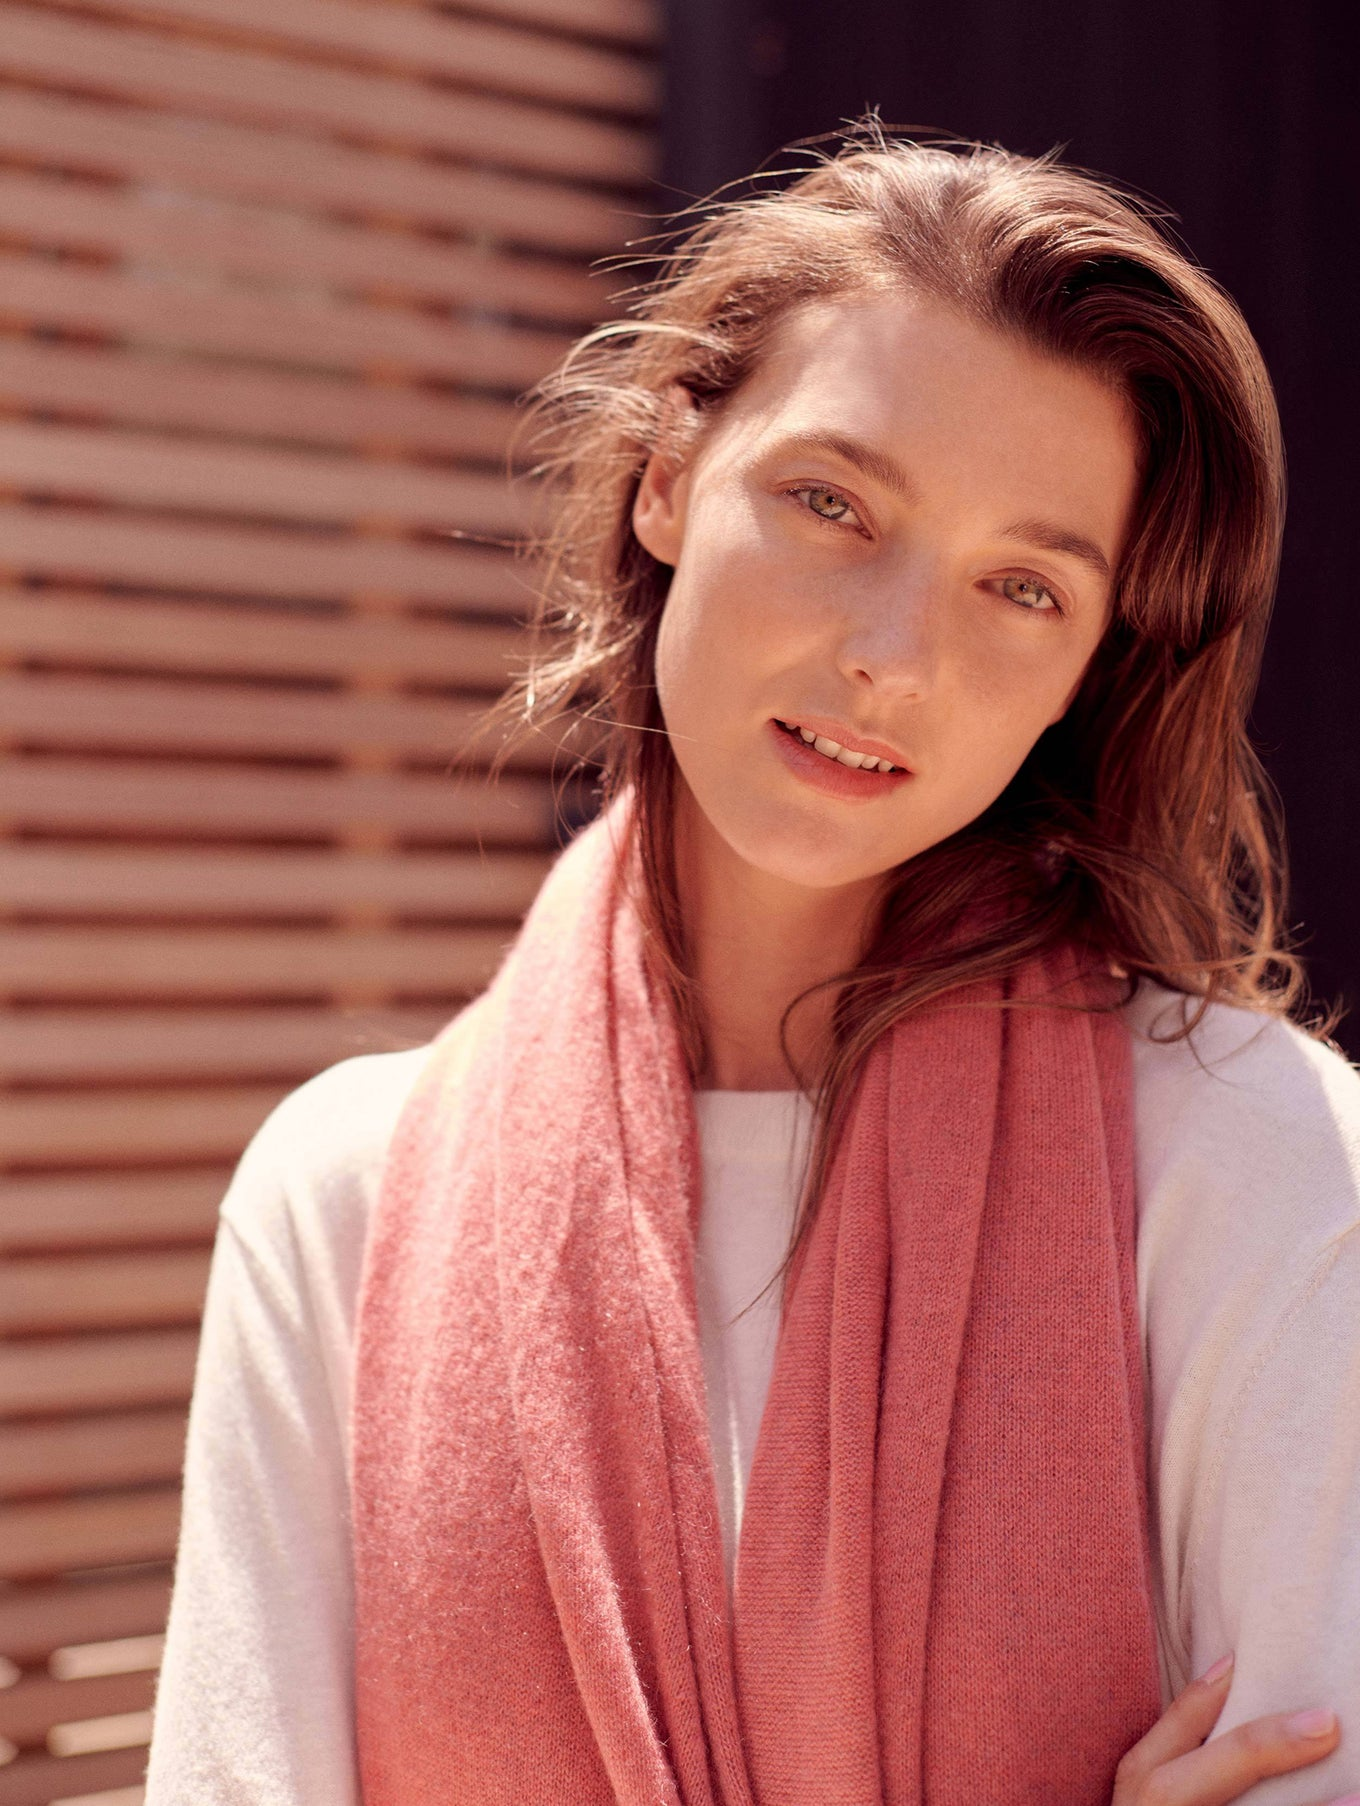 Cashmere Travel Wrap - Pink Opal Heather - Image 2